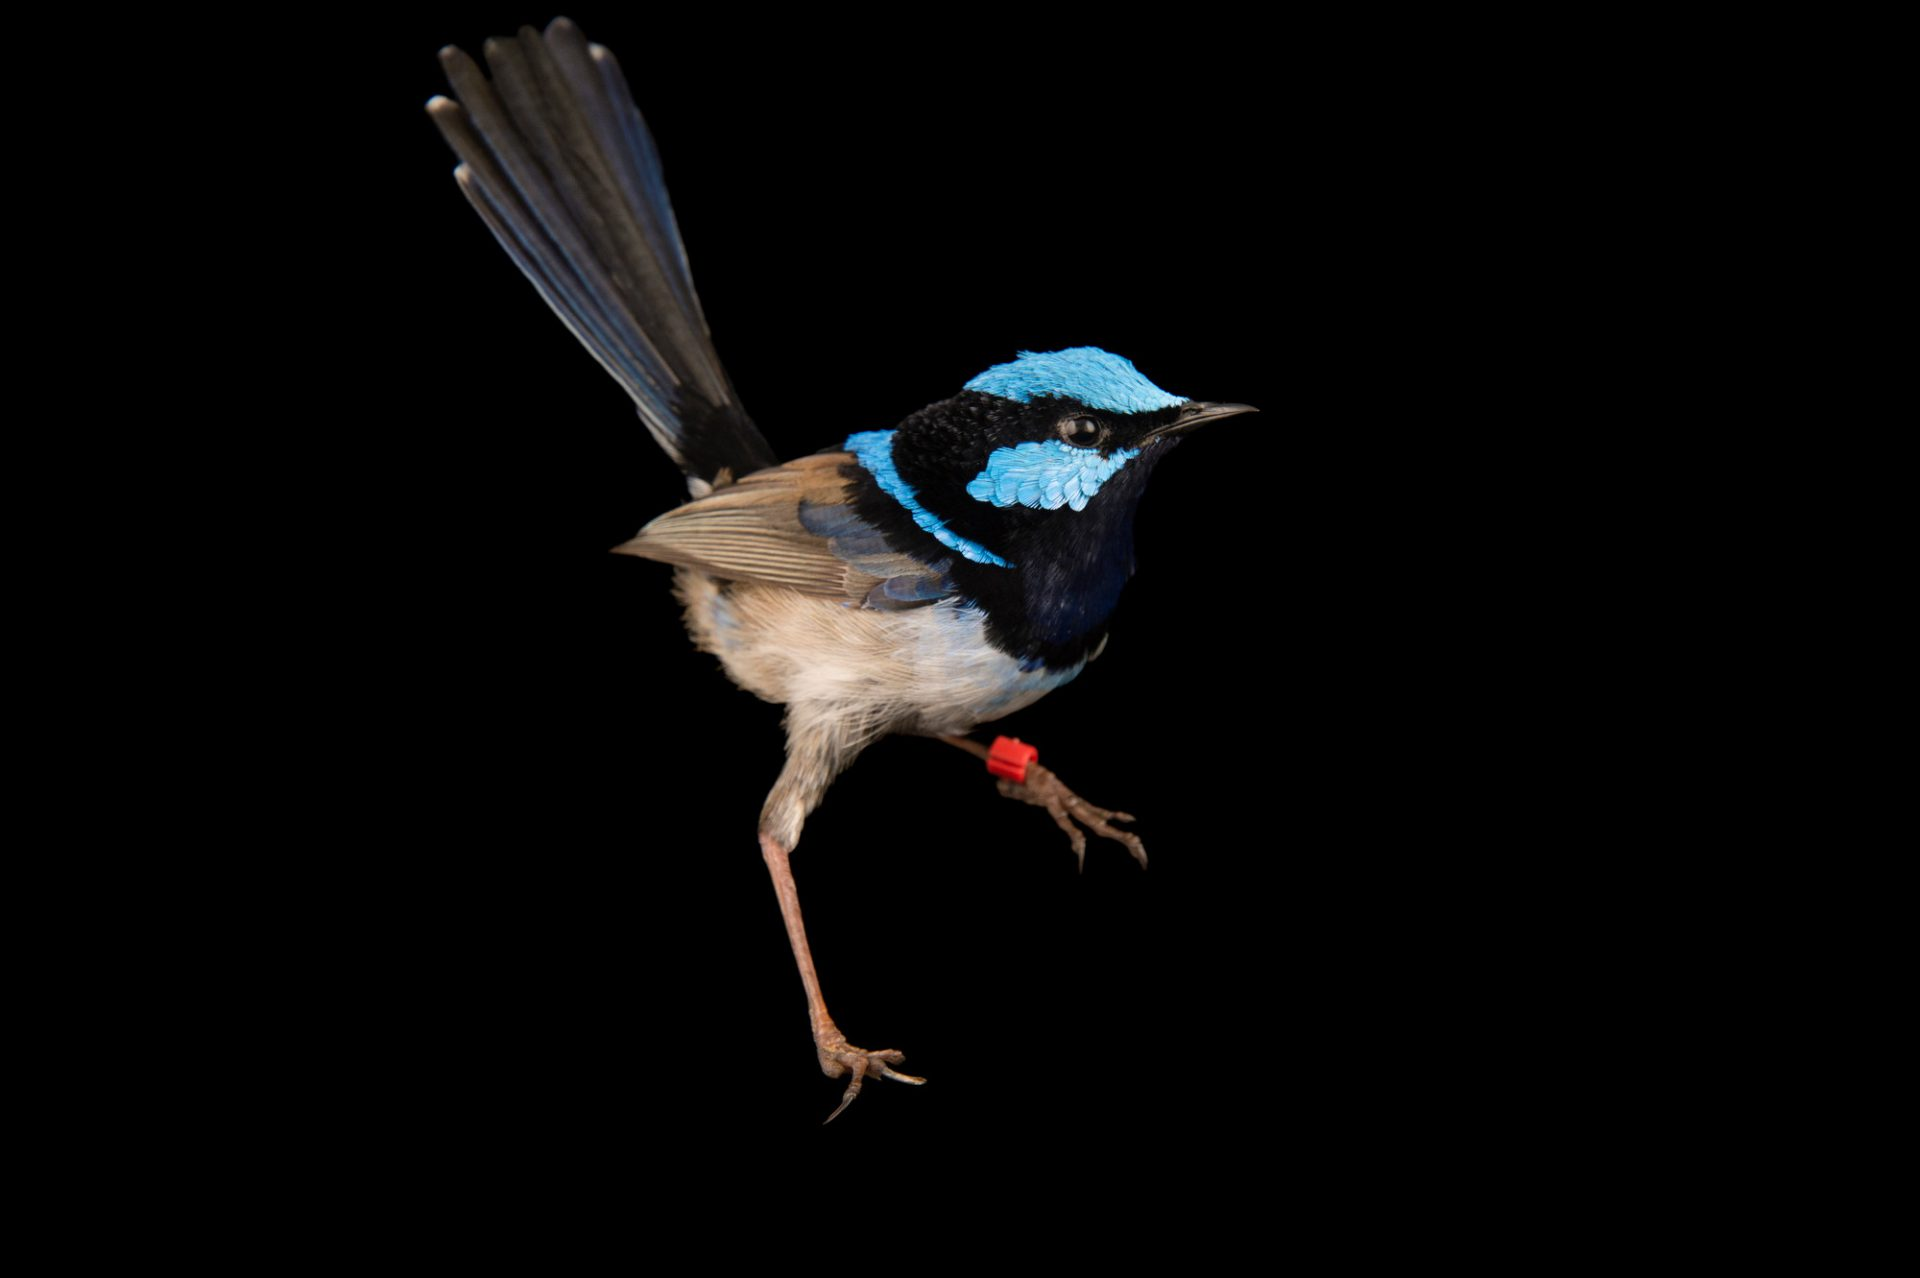 Picture of a superb fairywren (Malurus cyaneus) at the Healesville Sanctuary.